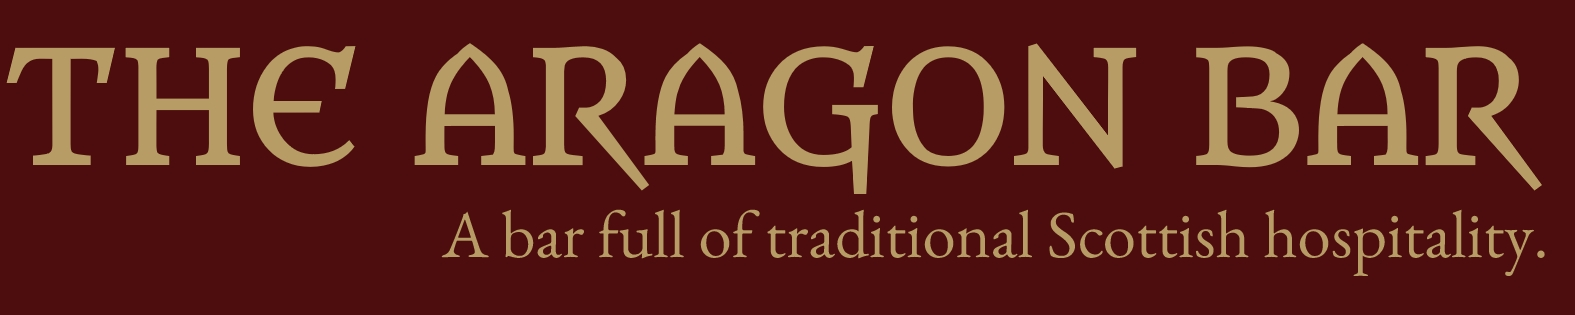 The Aragon Bar, Glasgow